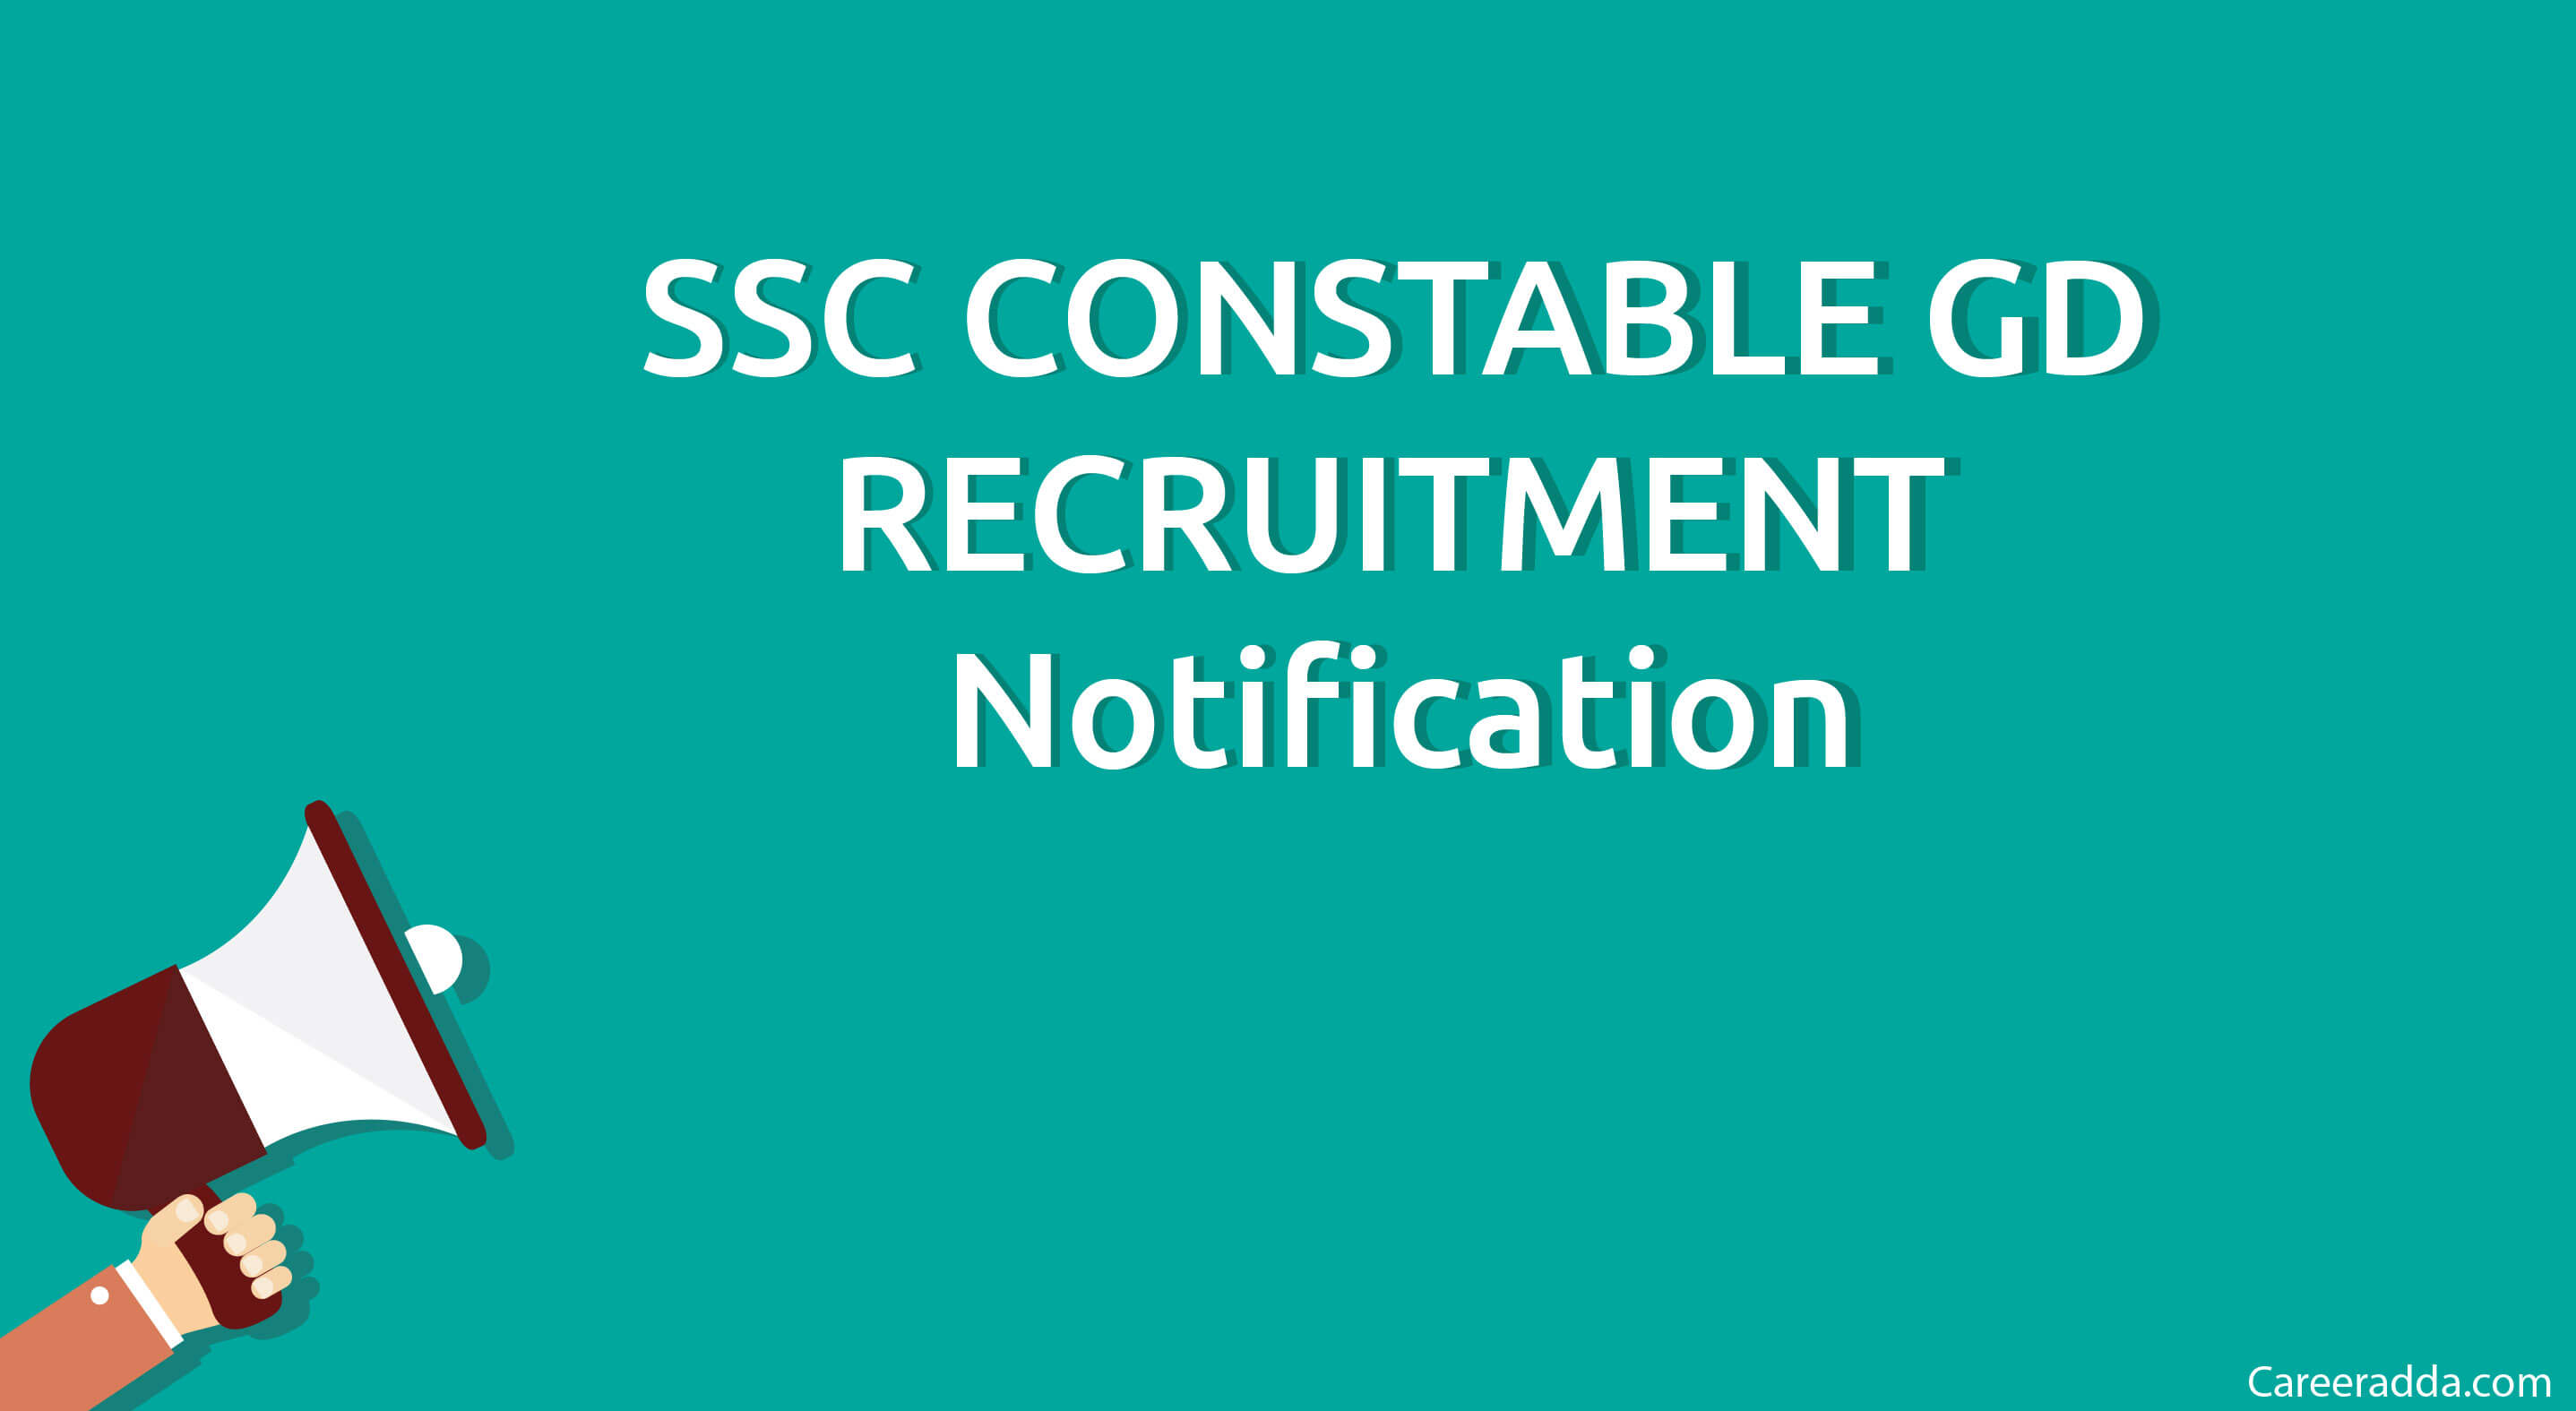 SSC Constable GD Recruitment